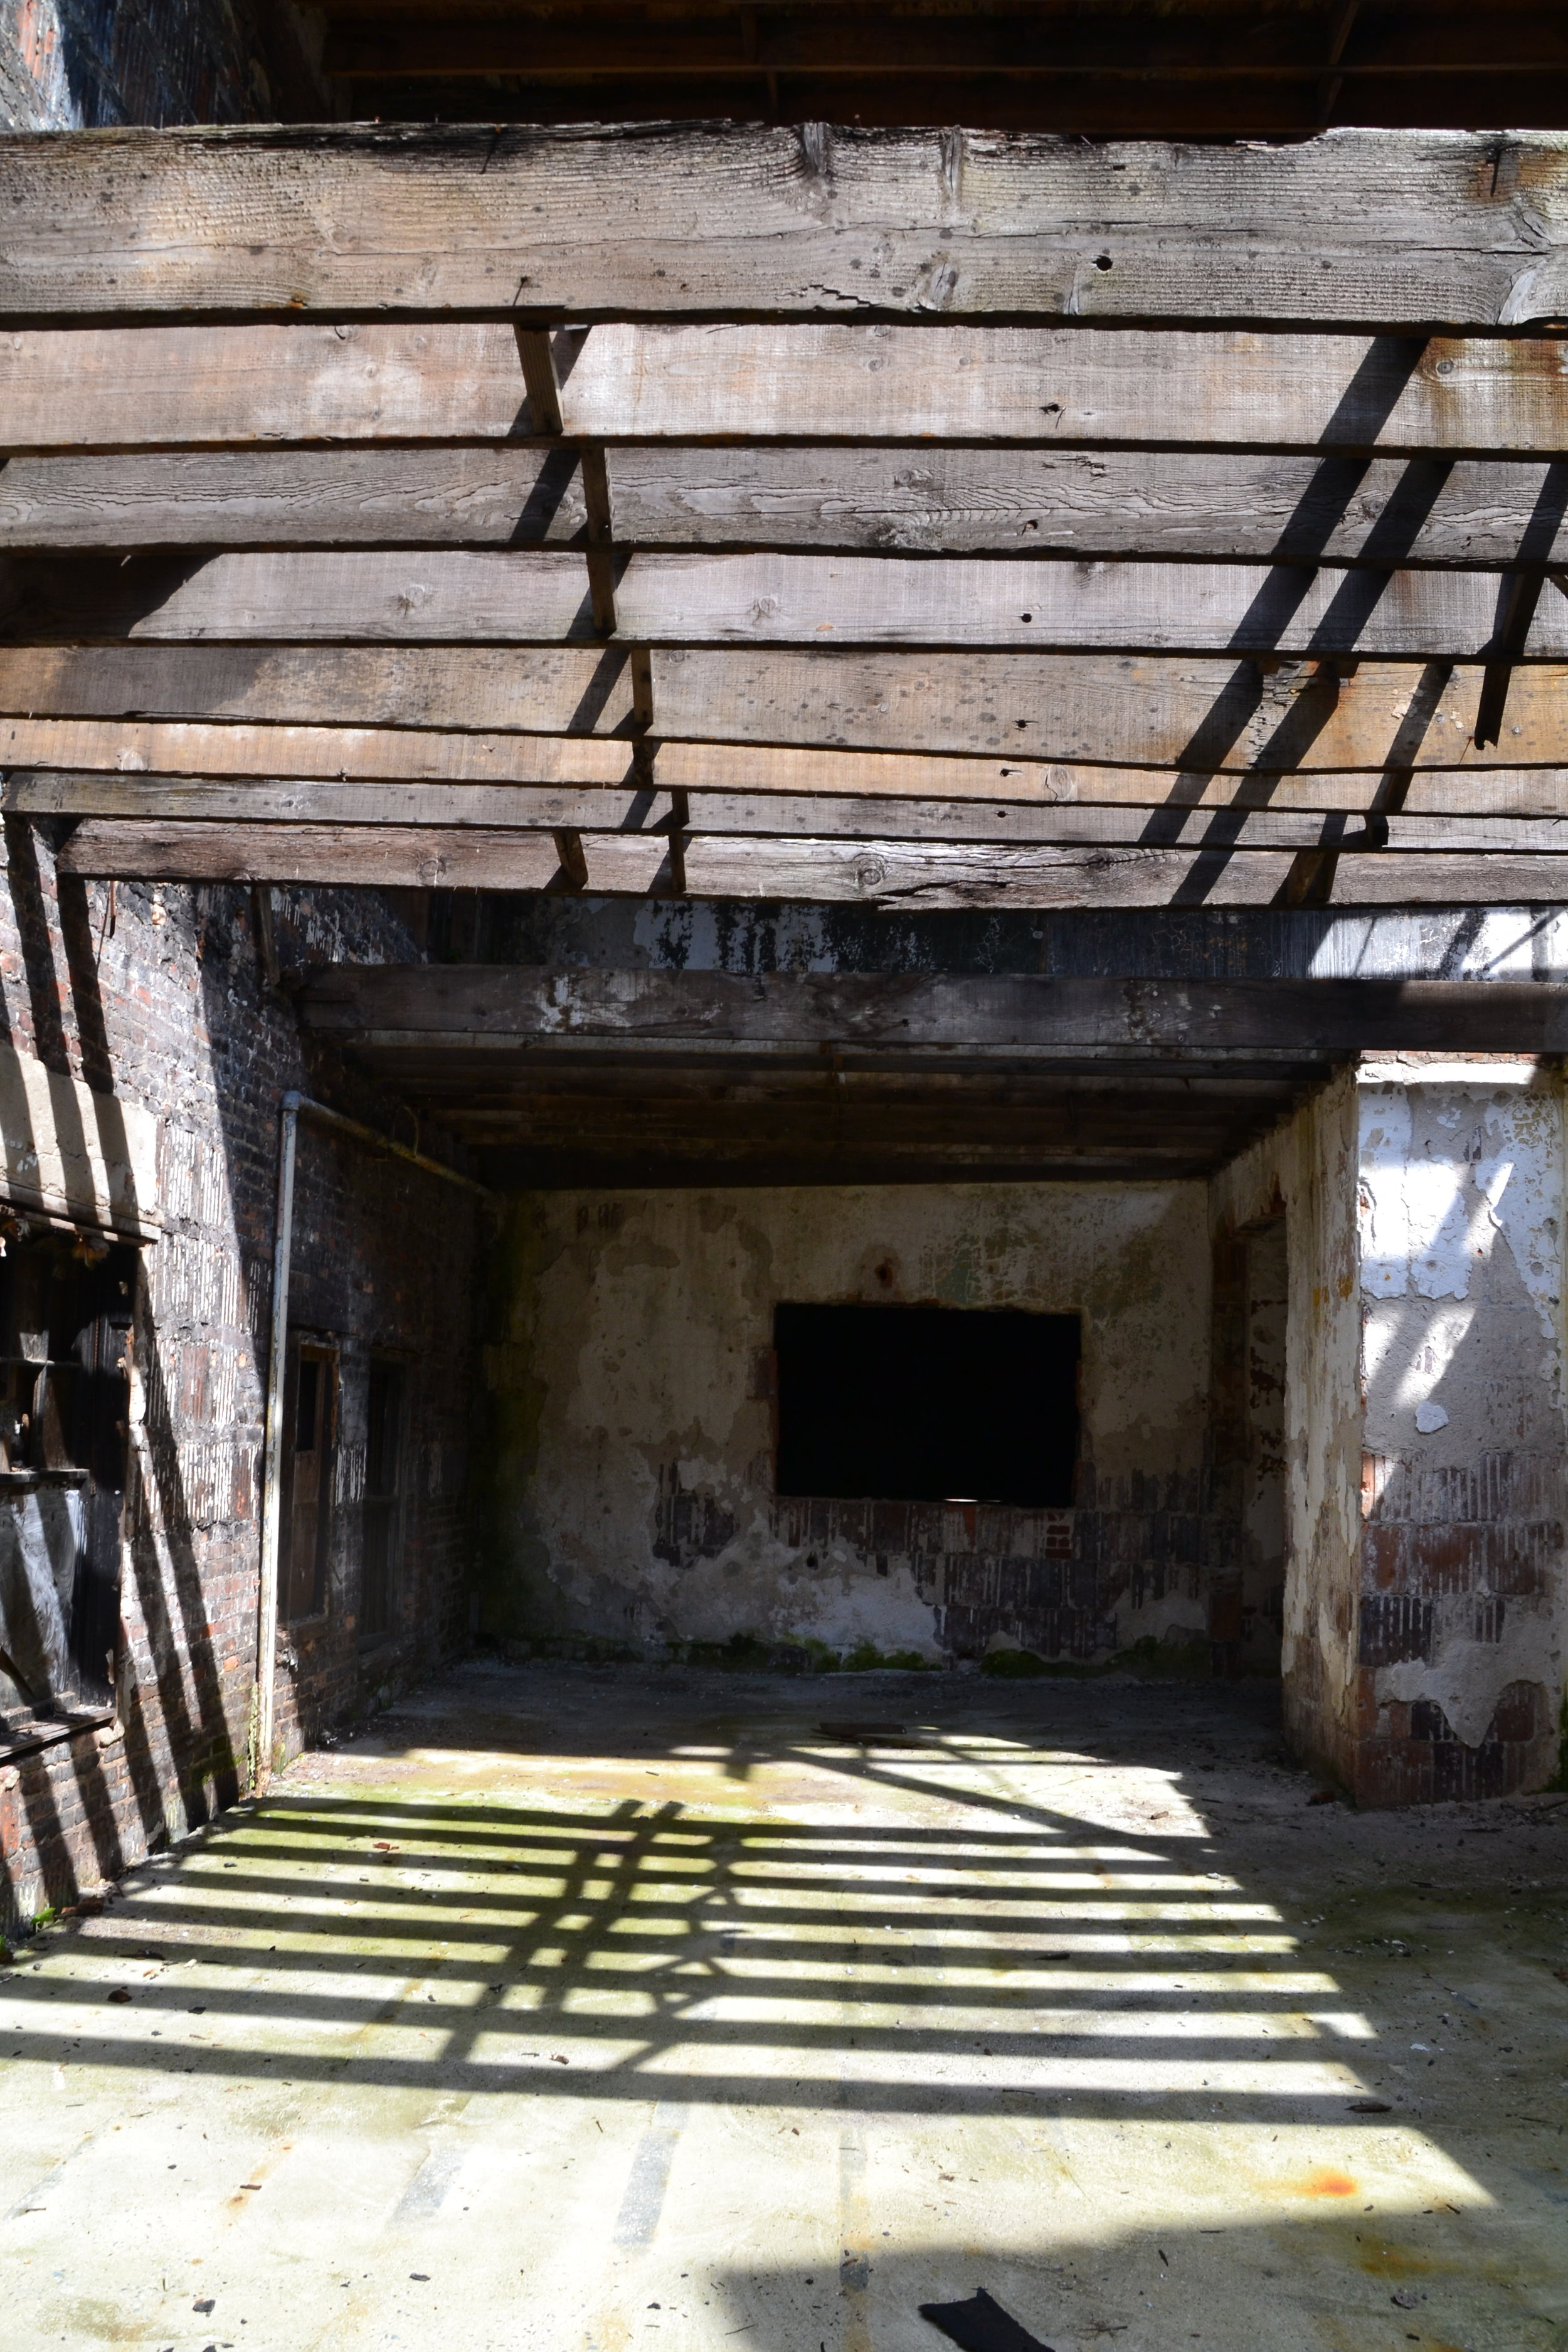 The interior demolition of the theatre revealed the structures good bones.